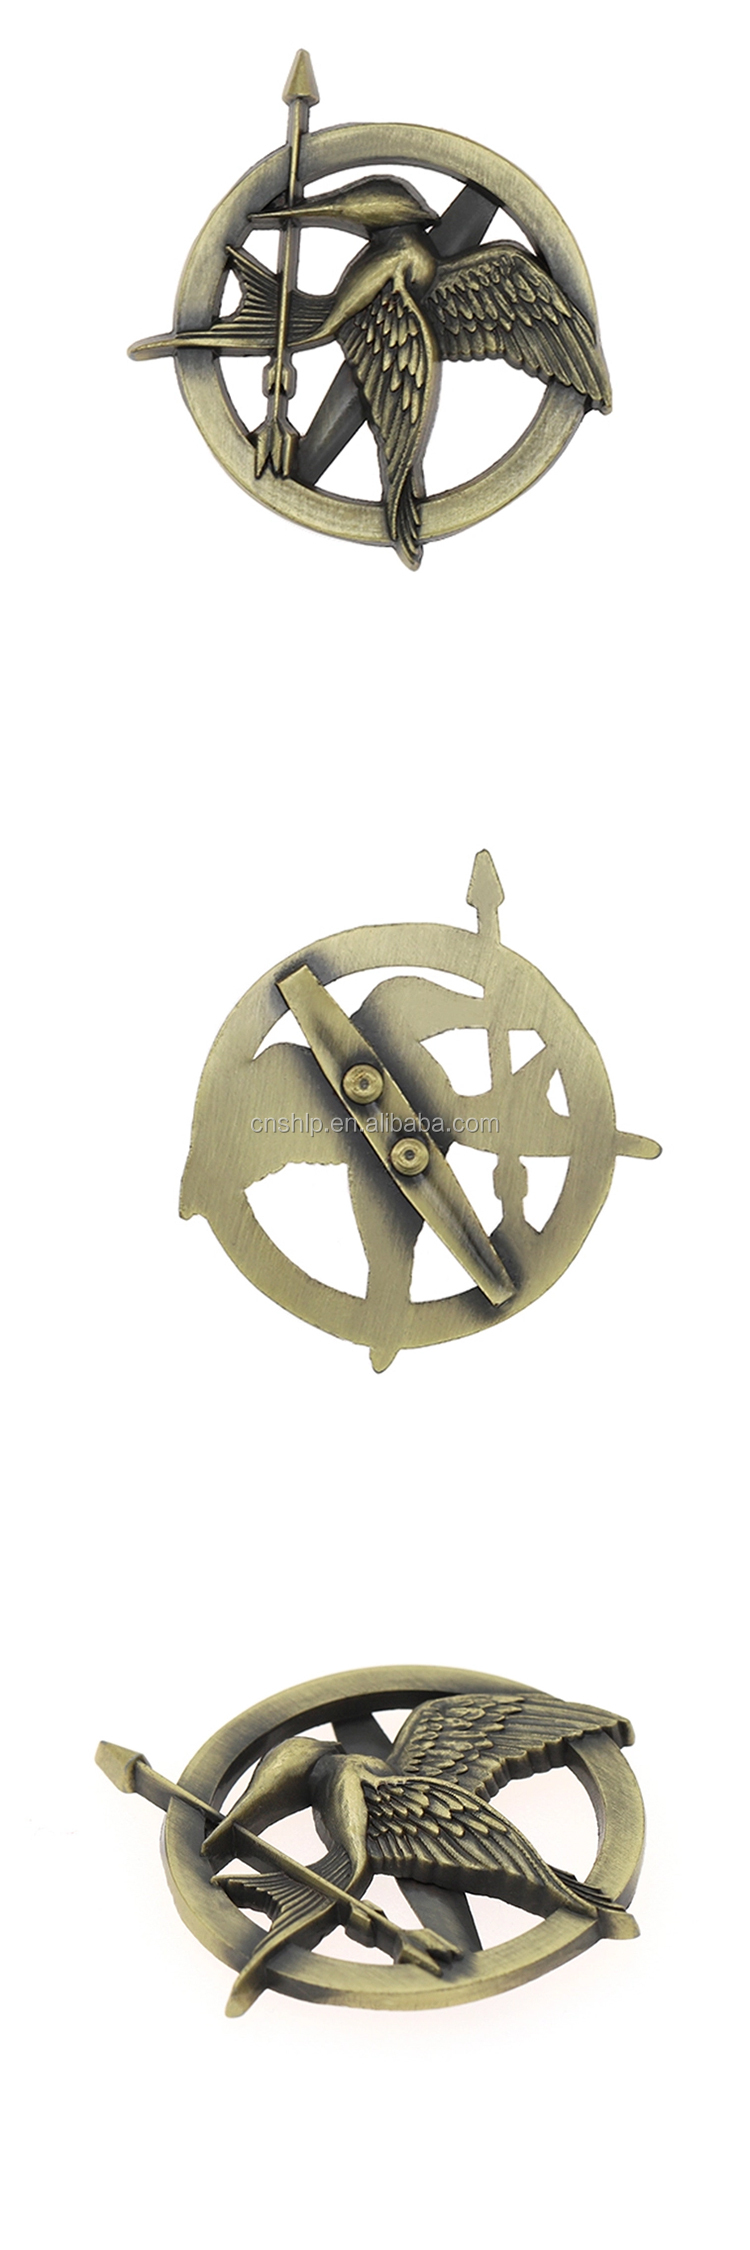 Shuanghua factory making hollowed metal antique gold lapel pin